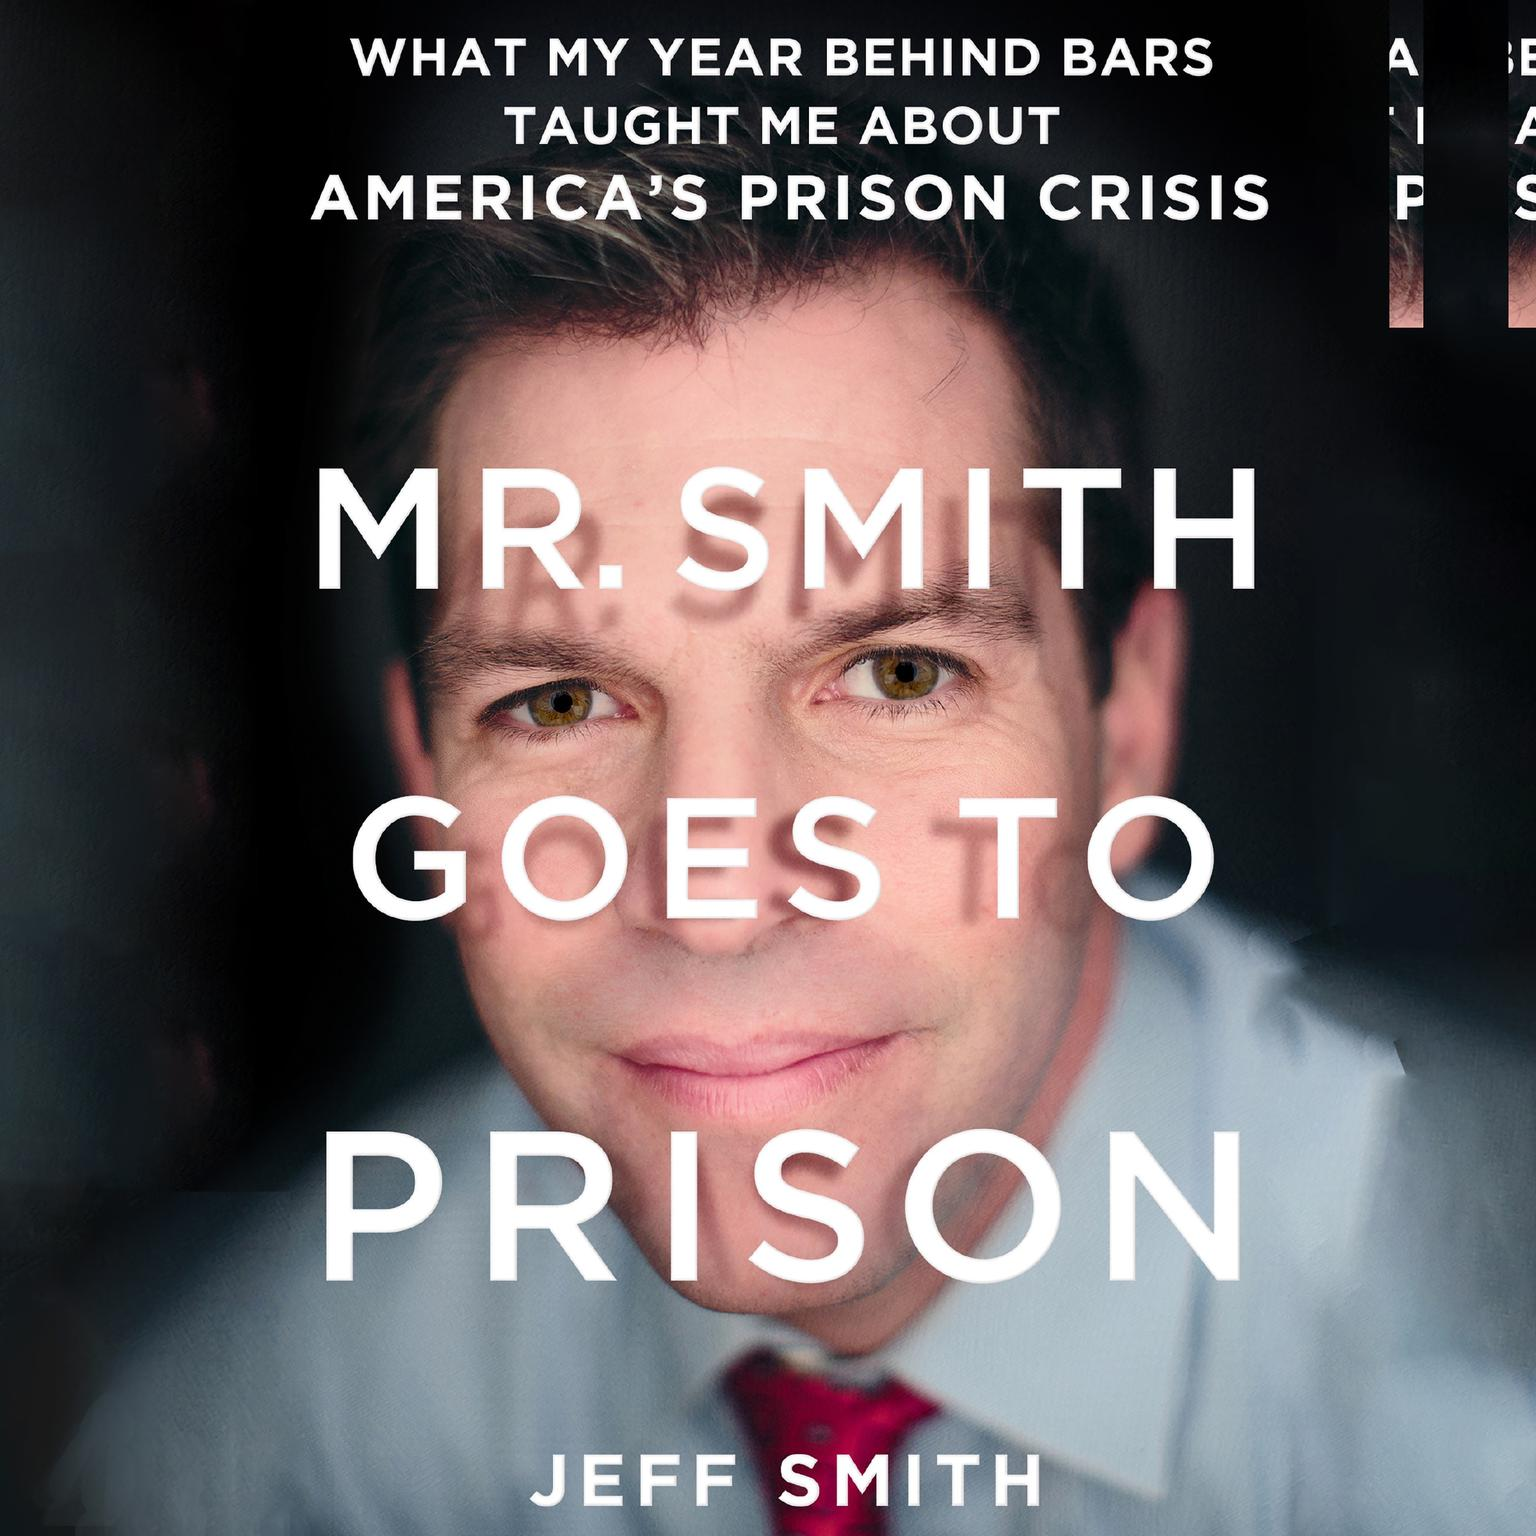 Printable Mr. Smith Goes to Prison: What My Year Behind Bars Taught Me About America's Prison Crisis Audiobook Cover Art